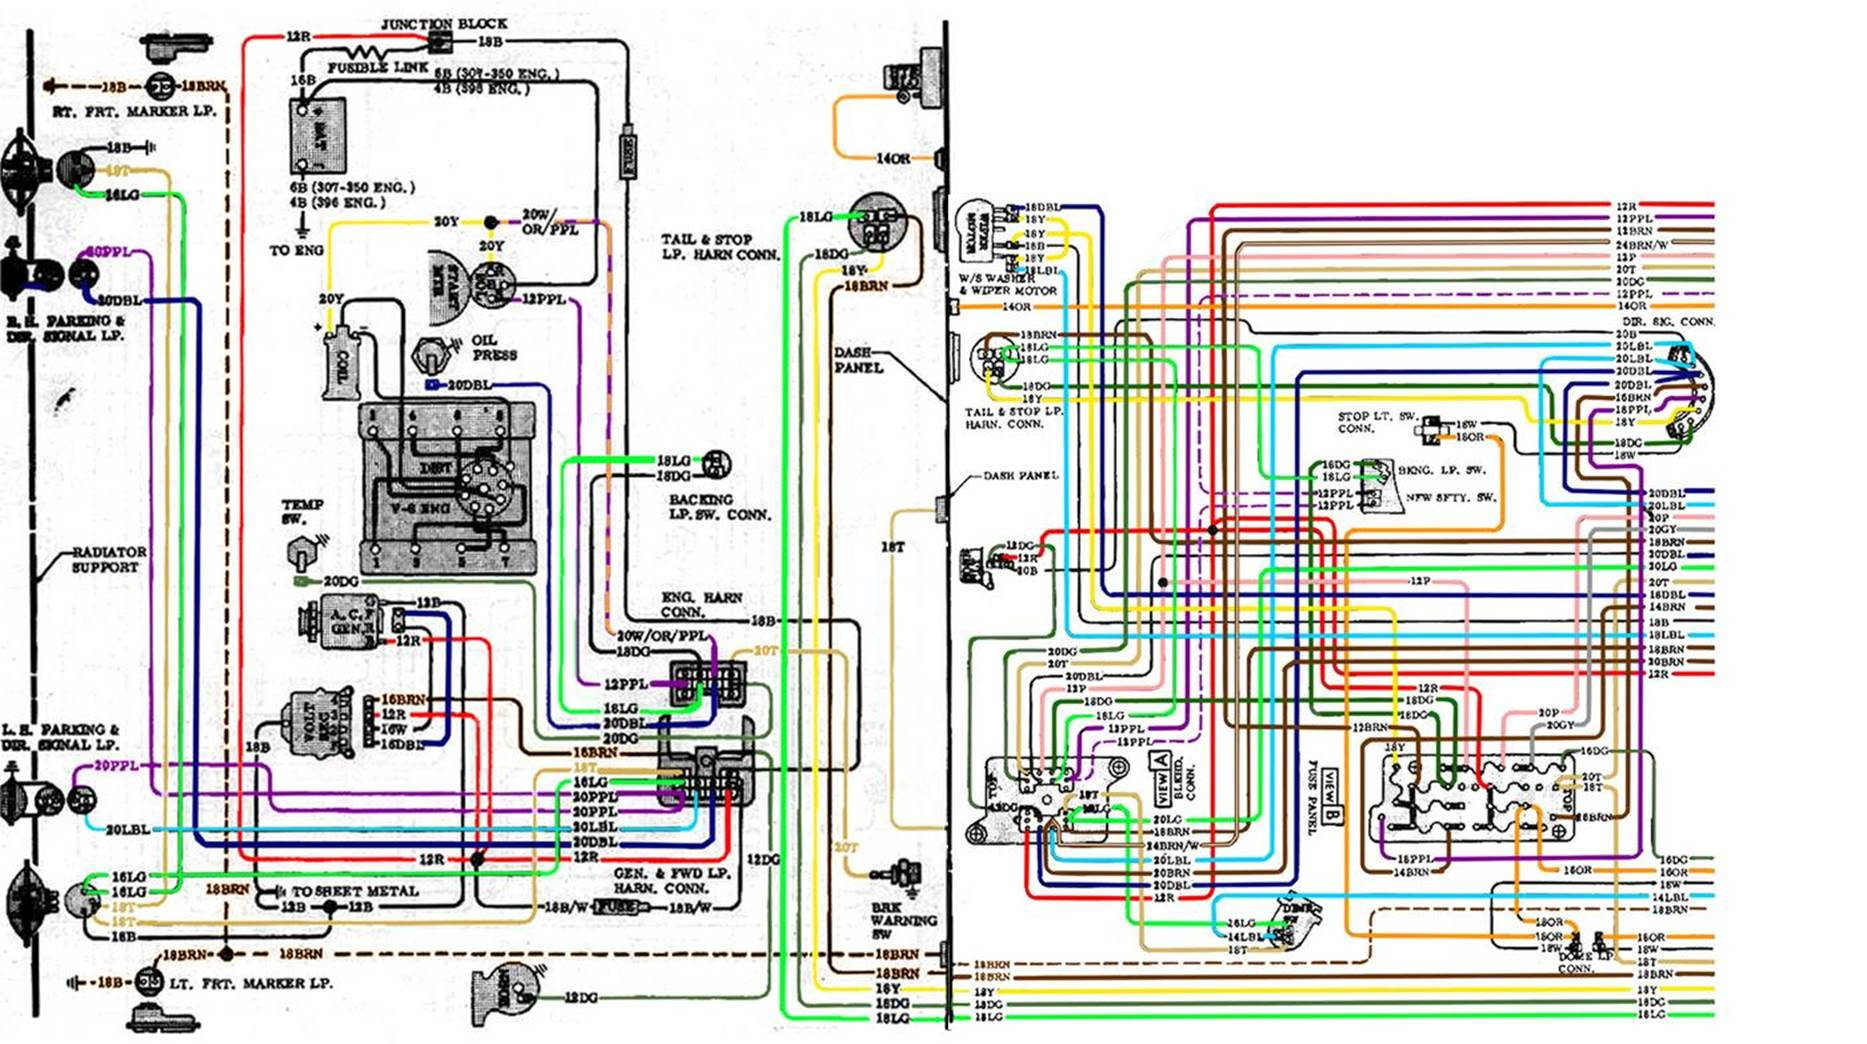 1971 blazer wiring diagram wiring diagrams schematics rh o d l co 1972 nova wiring diagram in color 1972 Nova Wiring Diagram